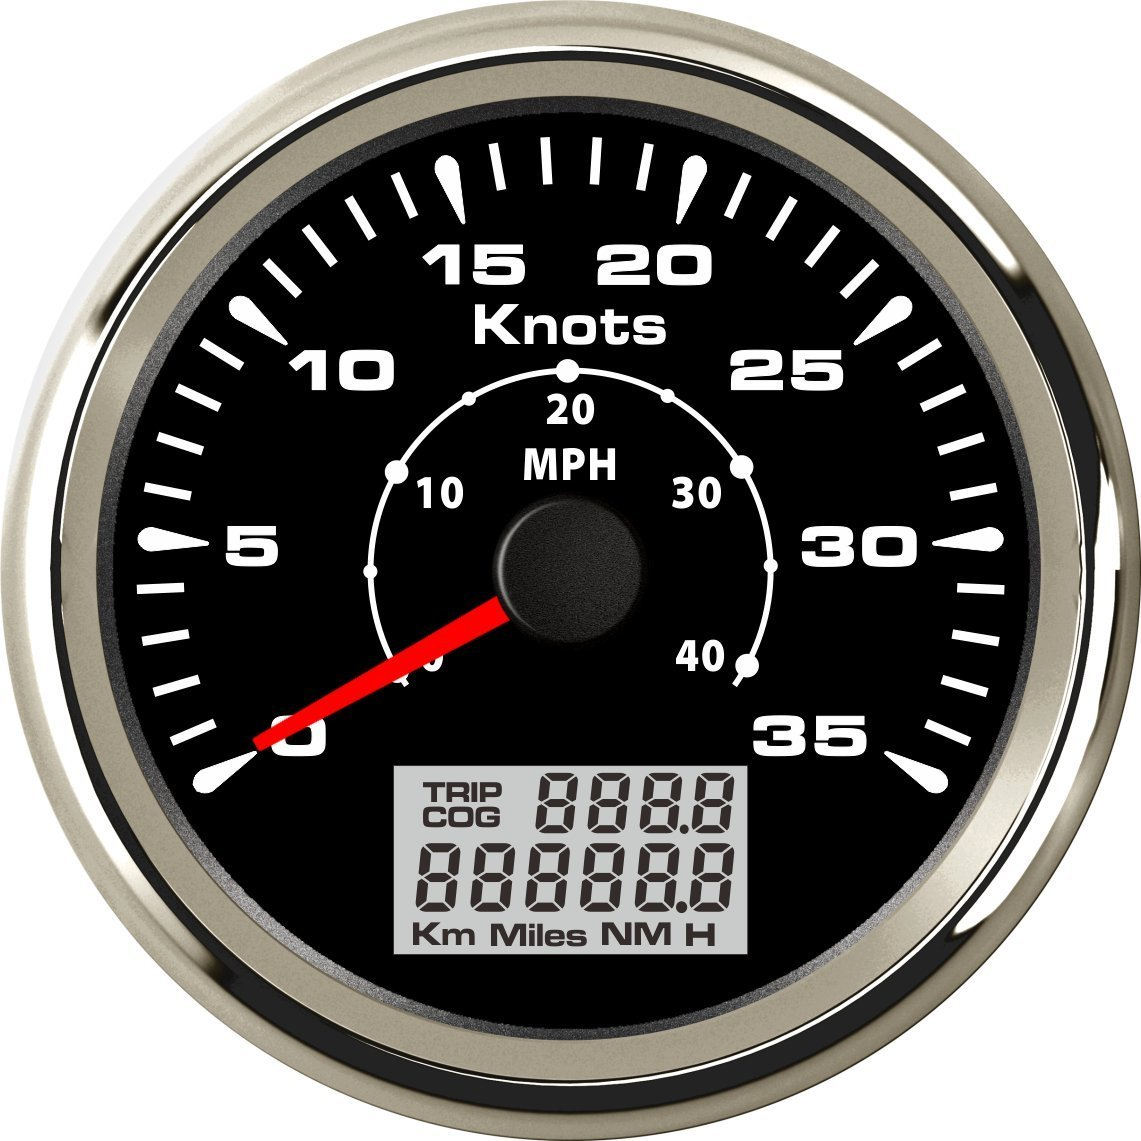 ELING Universal Marine GPS Speedometer Odometer 0-35KNOTS with Backlight 85mm by ELING